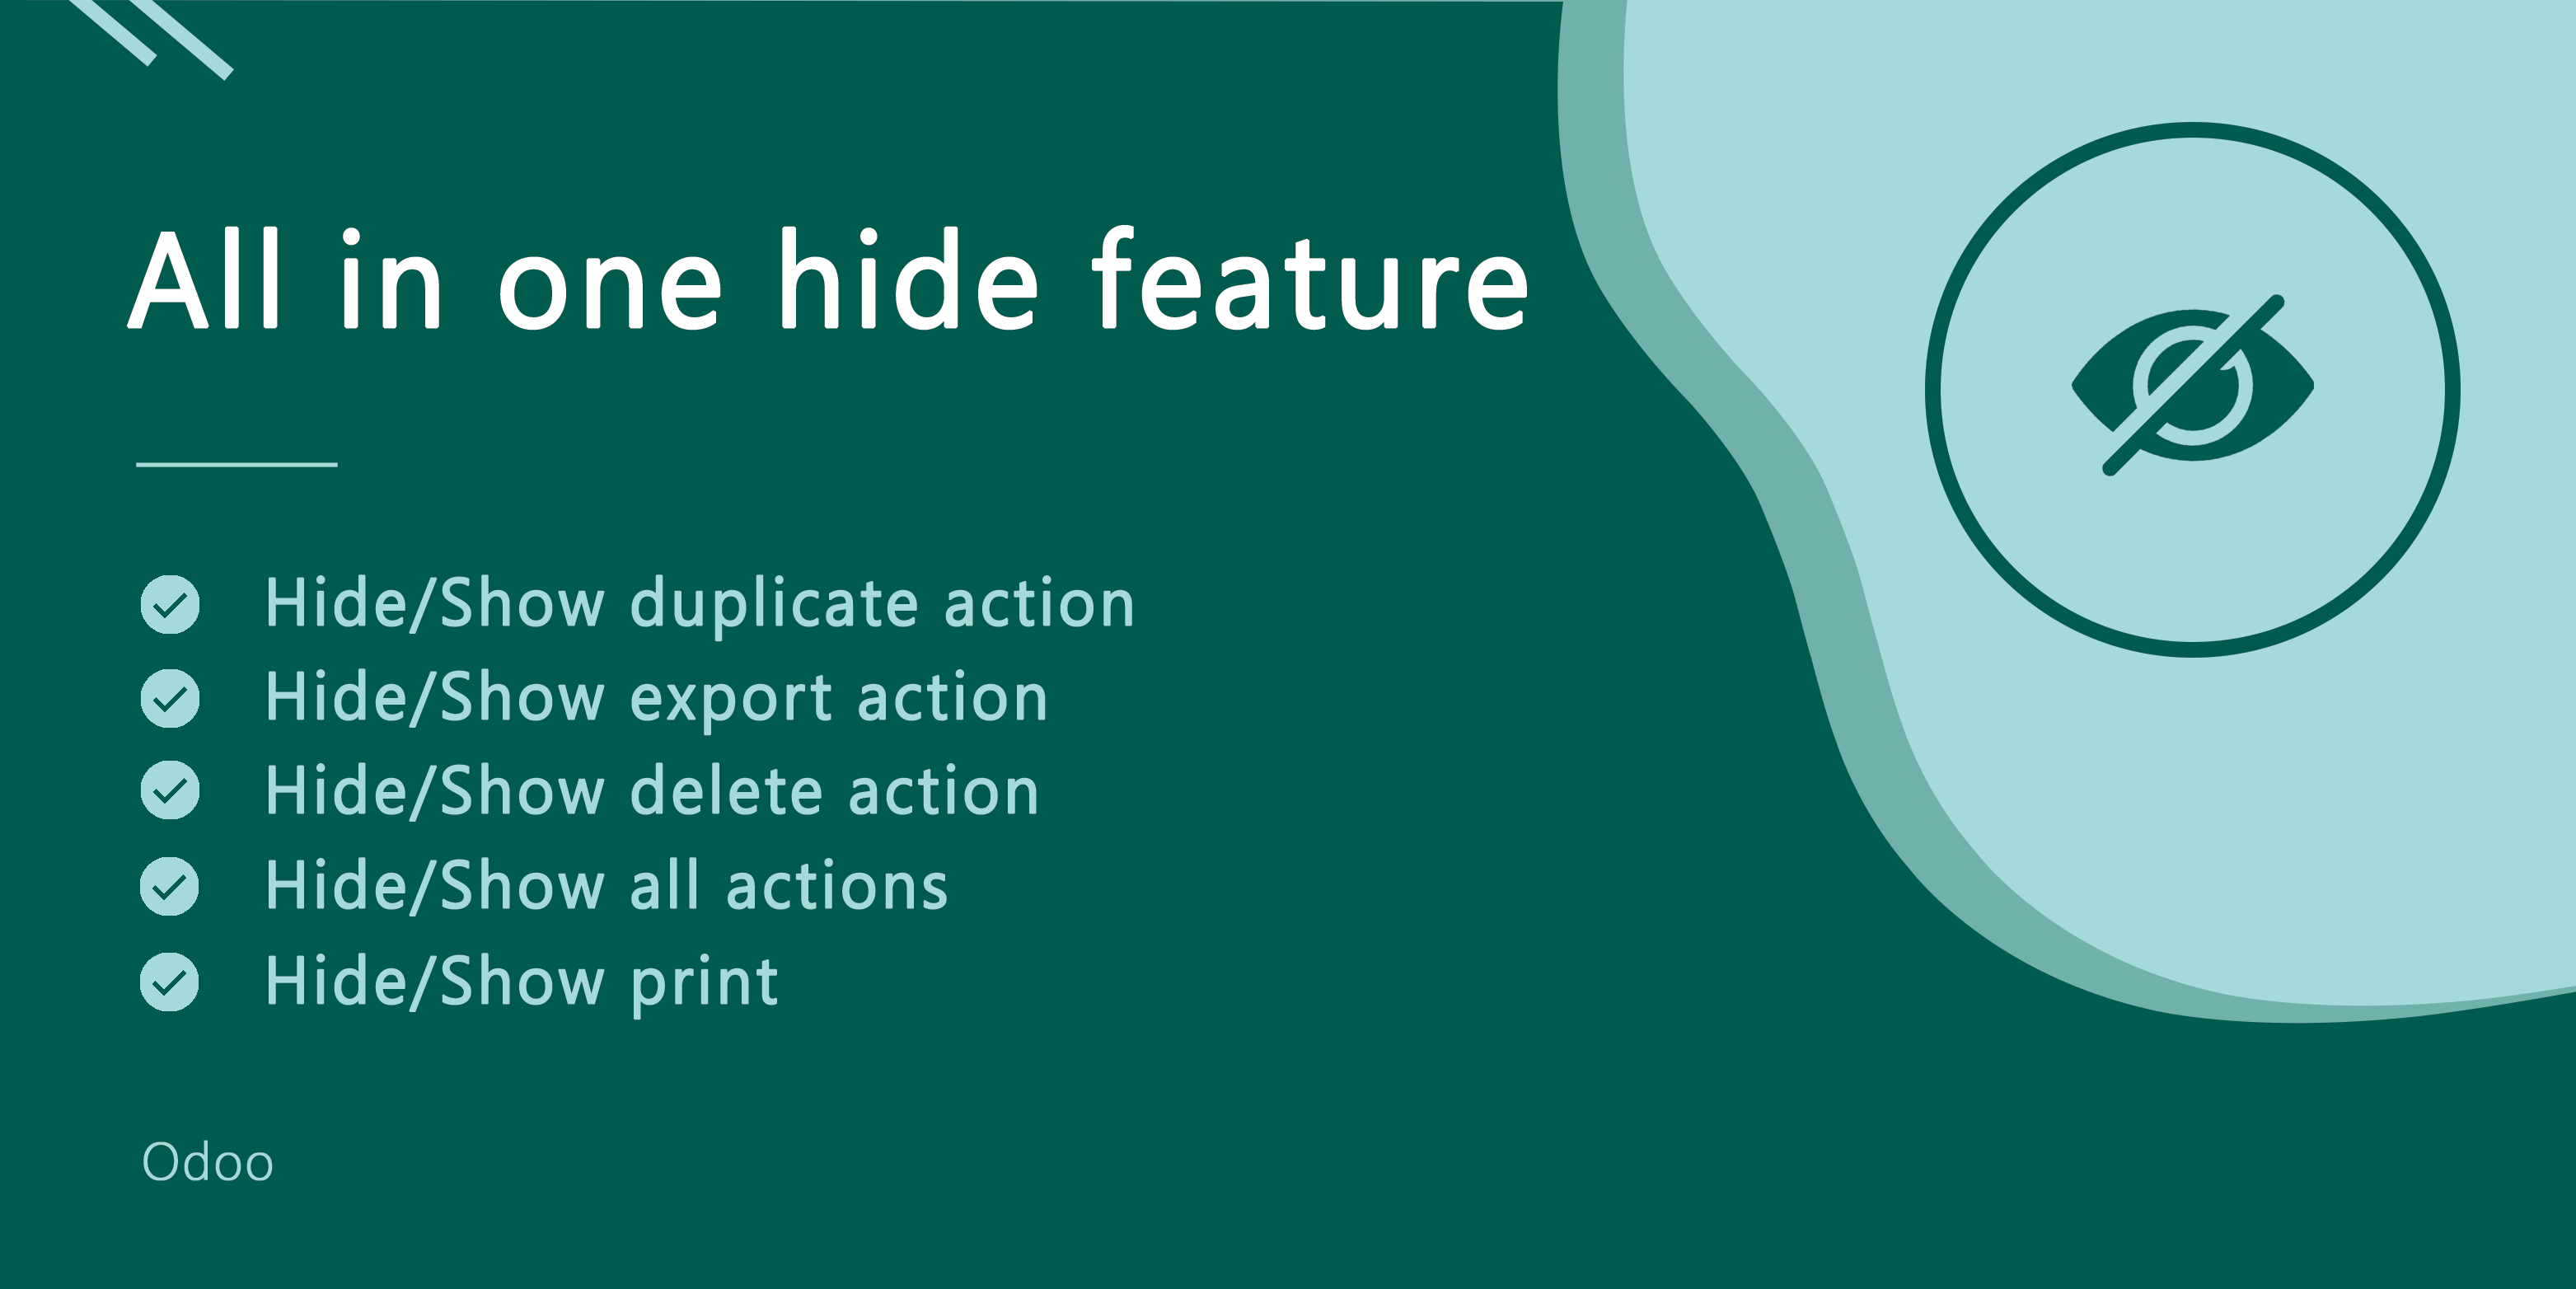 All In One Hide Feature